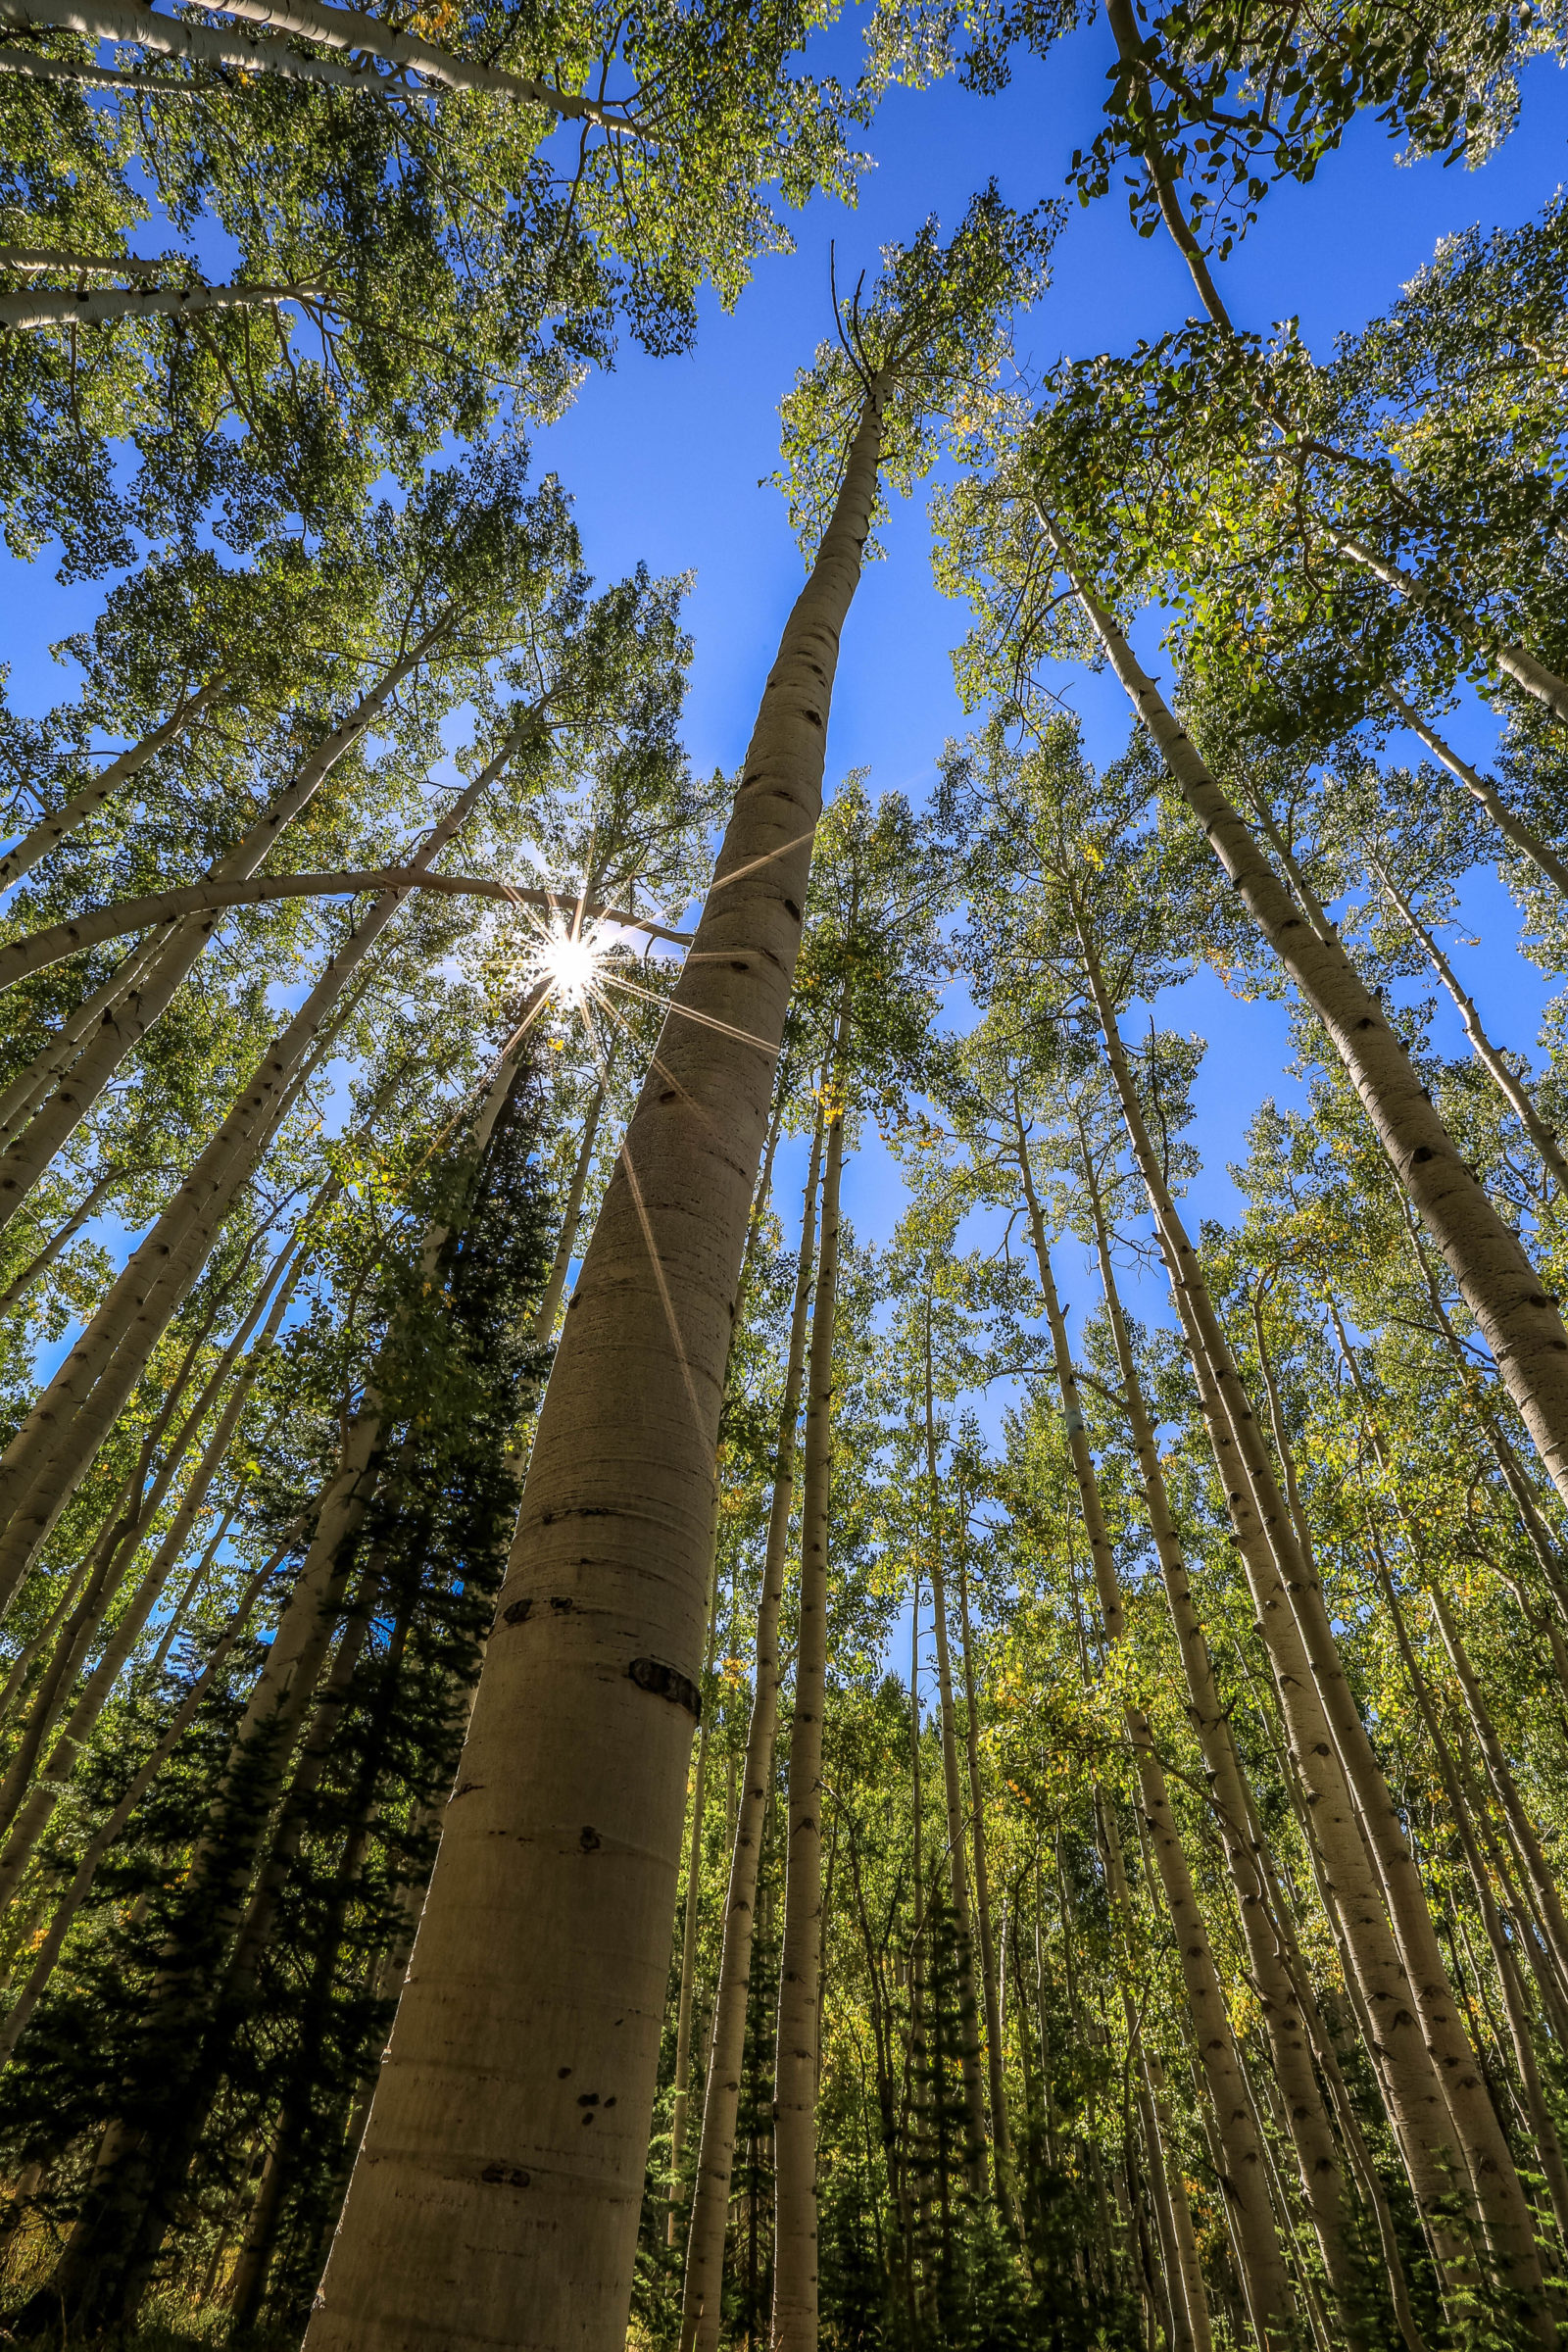 Inside the Aspen Forest